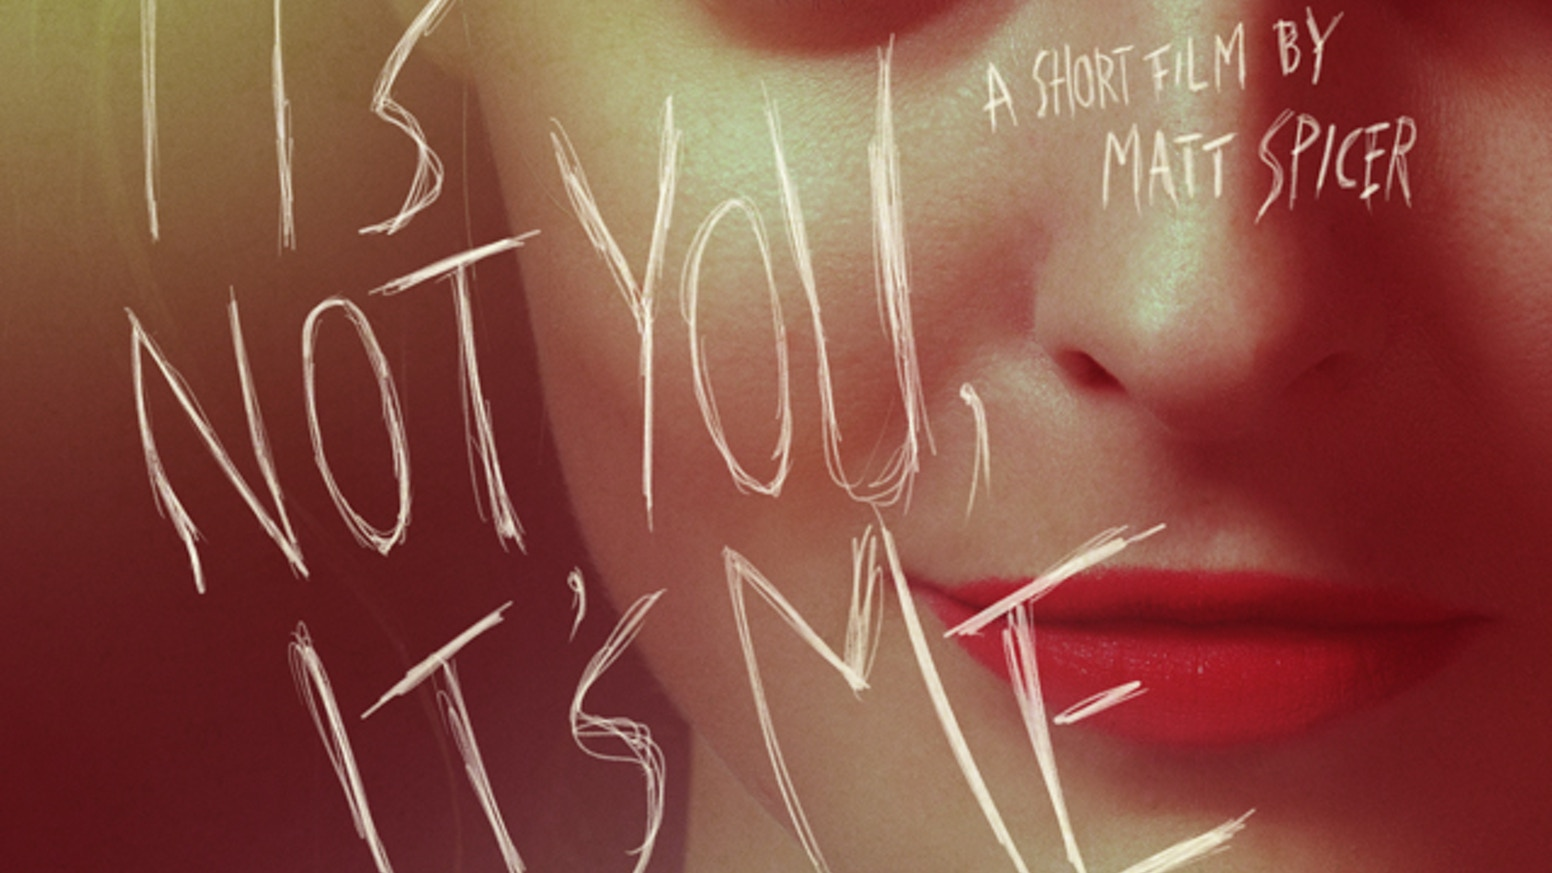 It's Not You, It's Me - WATCH IT HERE!Do you ever accidentally murder your significant other instead of just breaking up with them? I feel like we can all relate.- Shelby